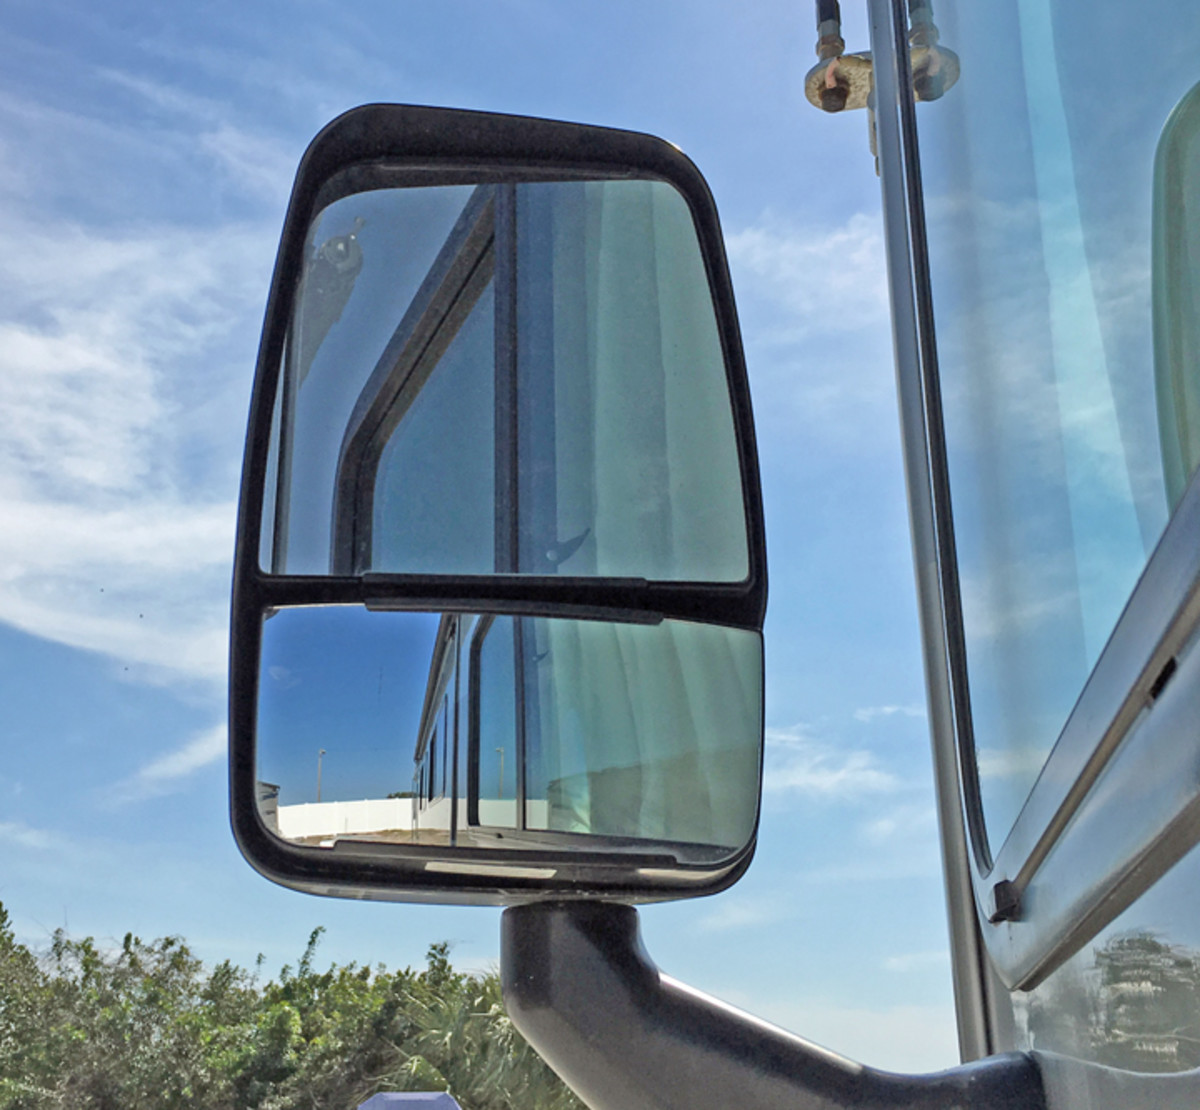 Standard motorhome mirrors are mounted at the front of the RV and are designed to give a both distant and close-up view of the road behind the RV.